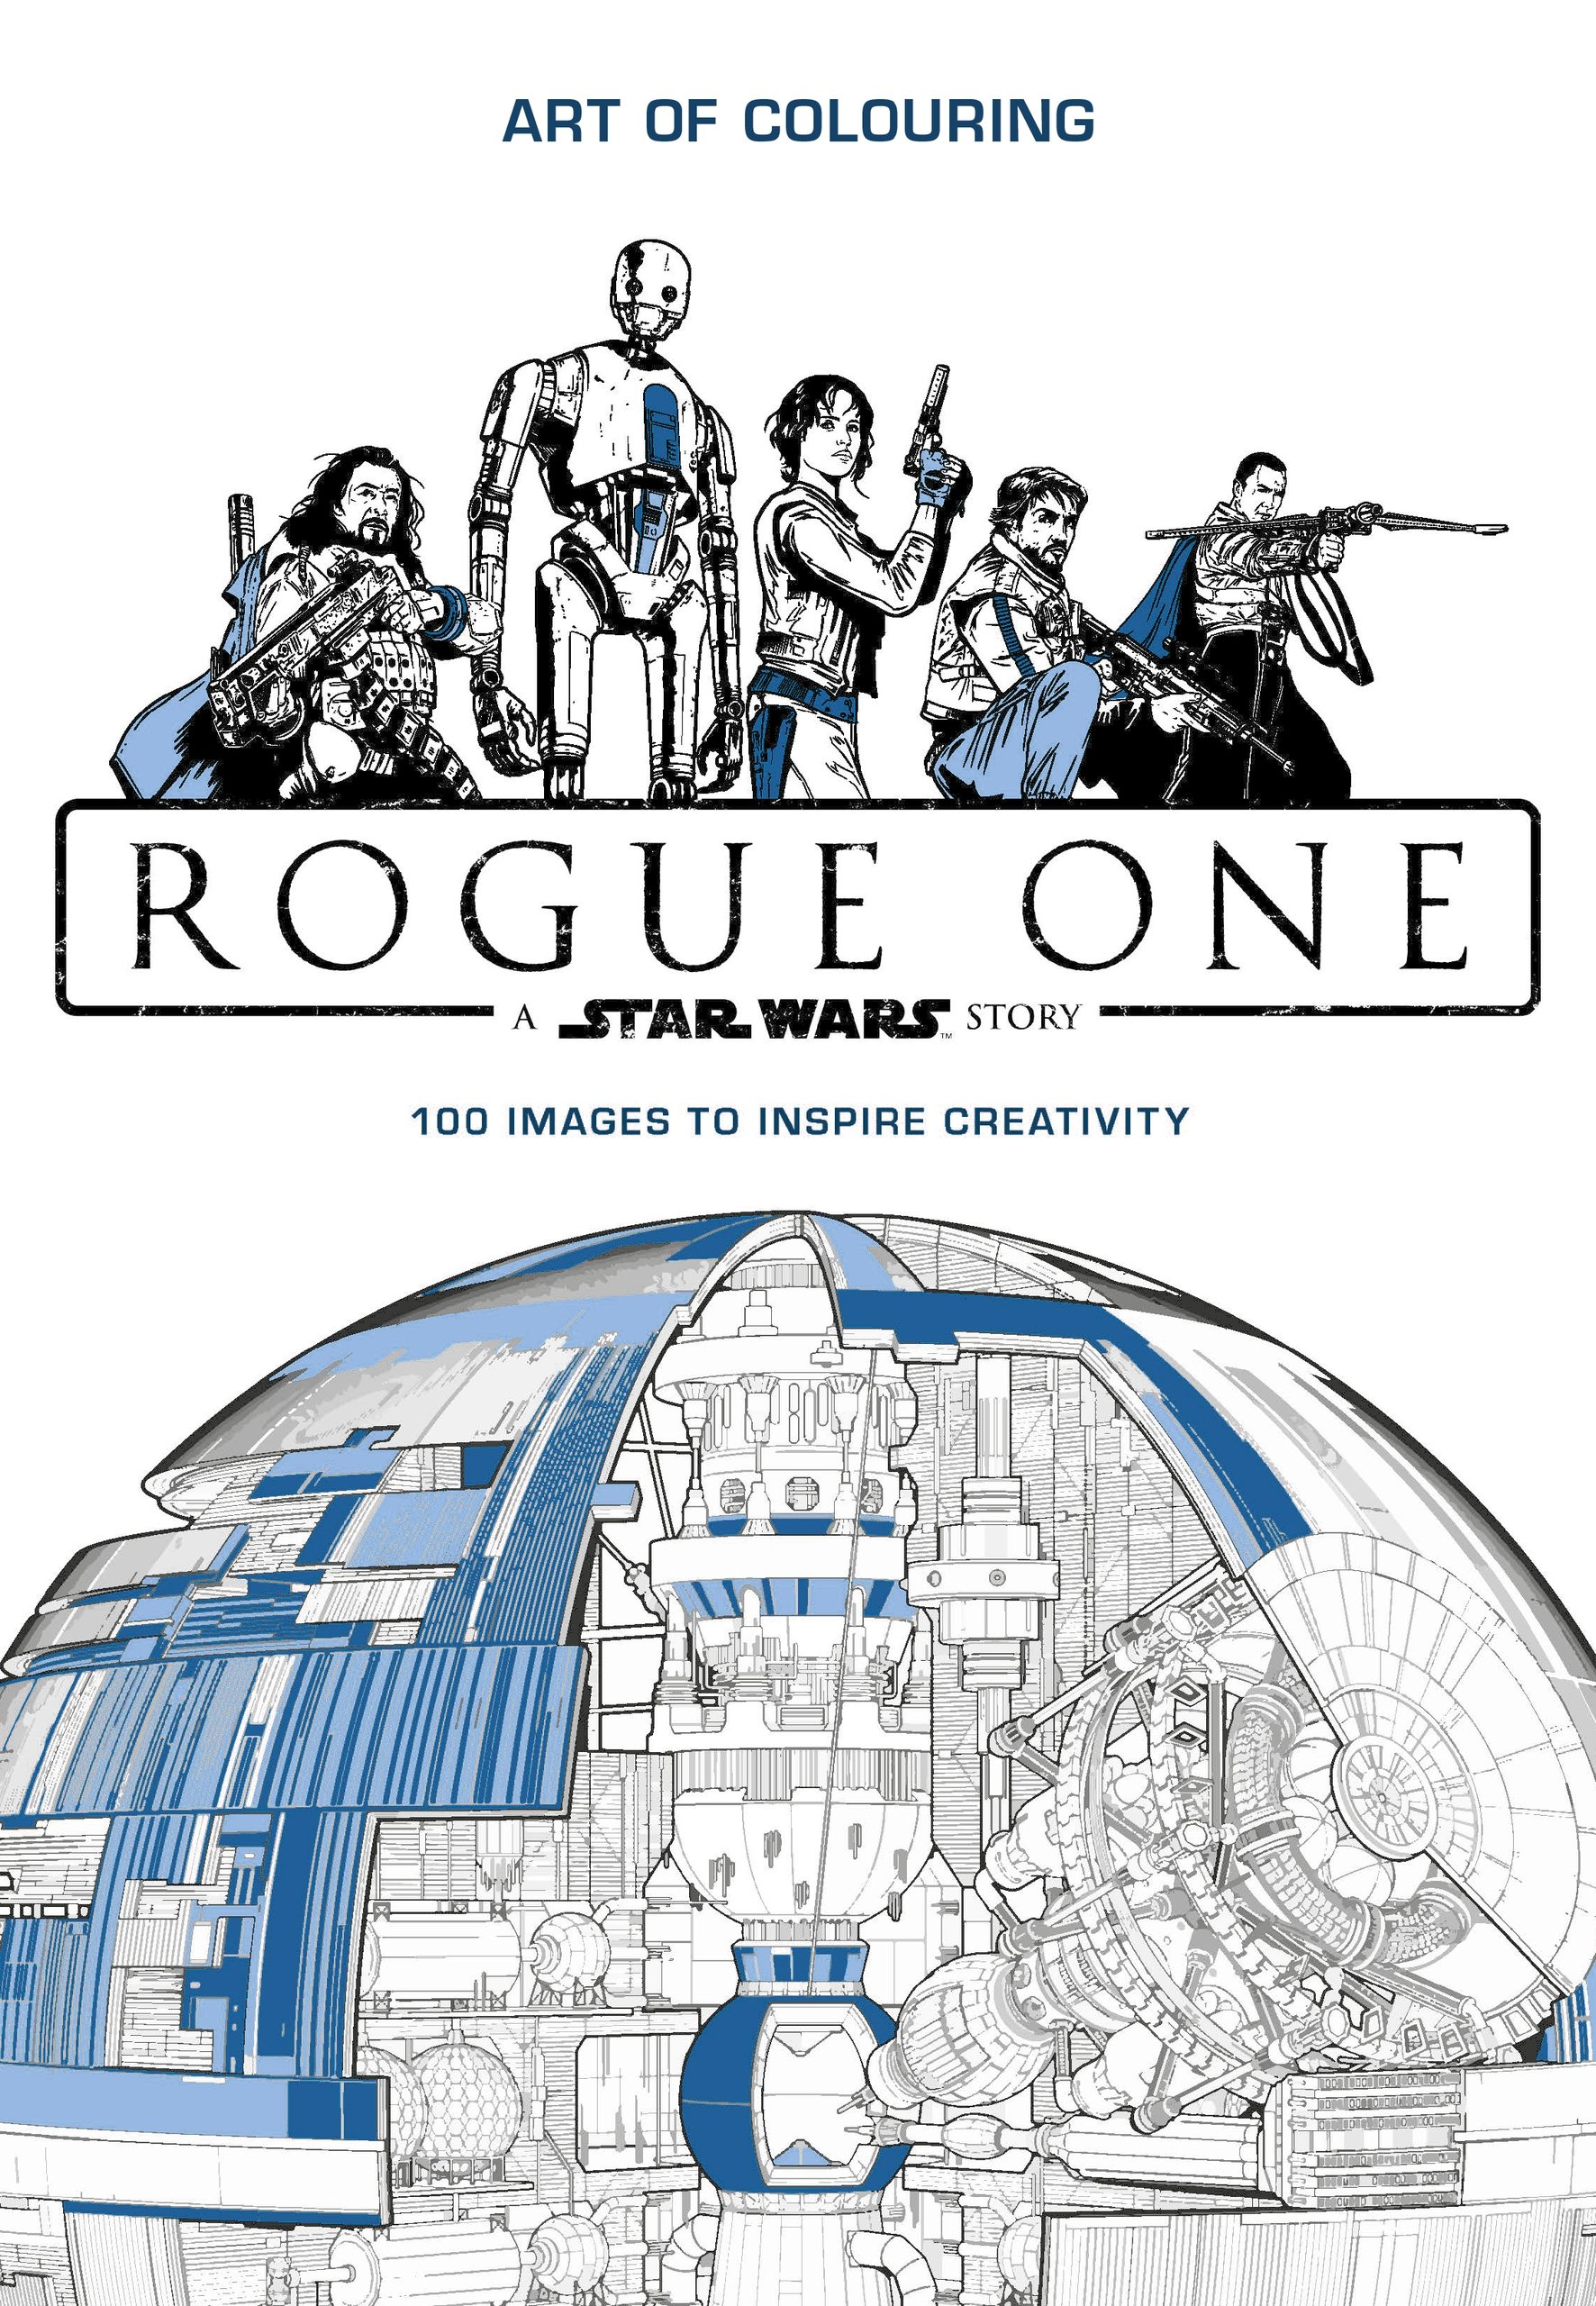 Star Wars Rogue One Art Of Colouring Amazon Co Uk Lucasfilm 9781405286374 Books